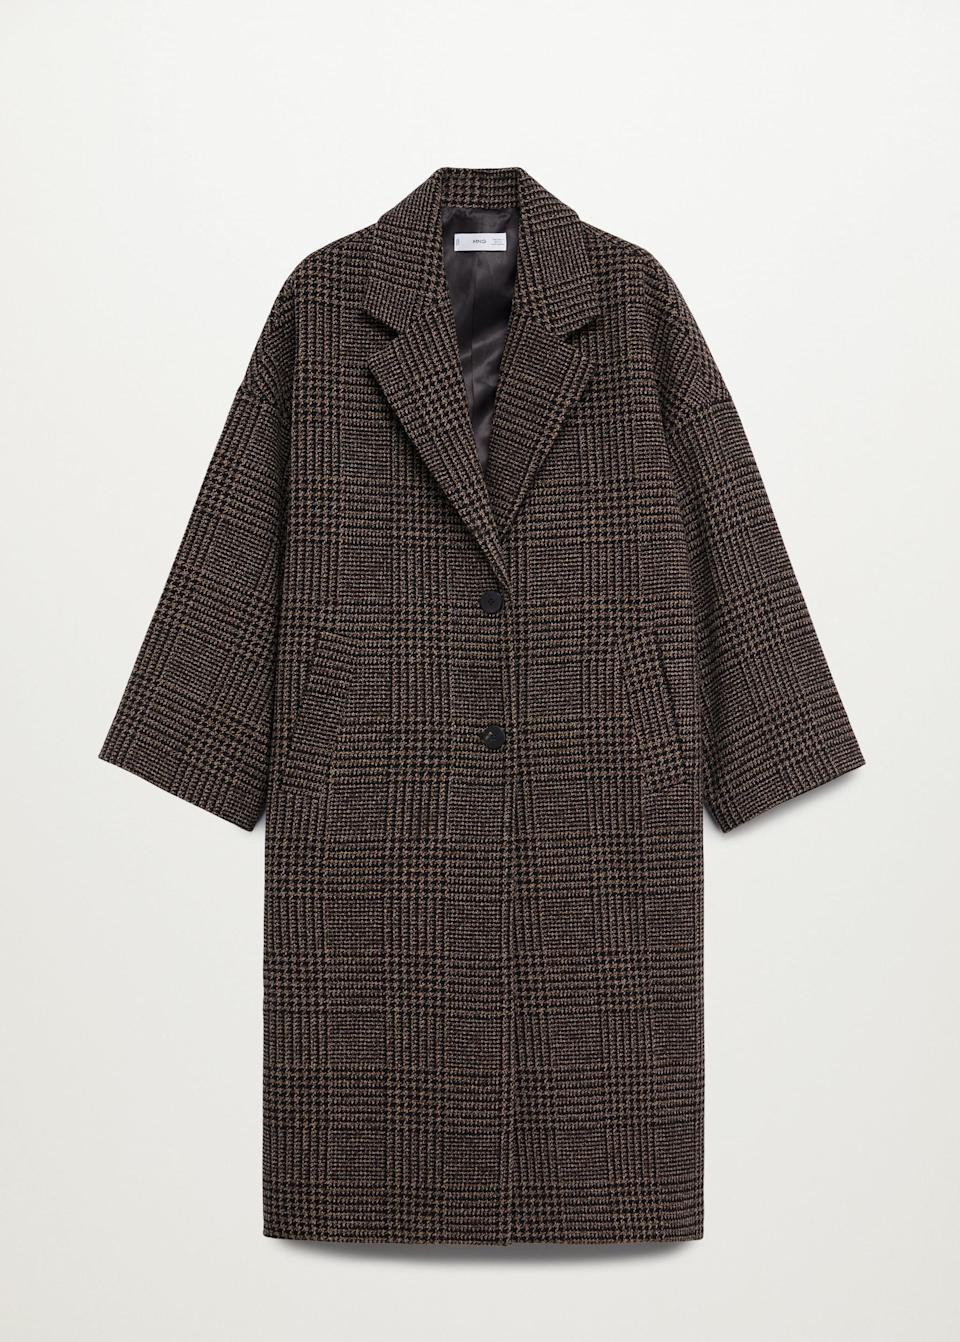 <p>Take a cue from Gigi Hadid and team this <span>Mango Oversize Wool Coat</span> ($150) with a pair of knee-high suede boots and a shearling bucket hat.</p>